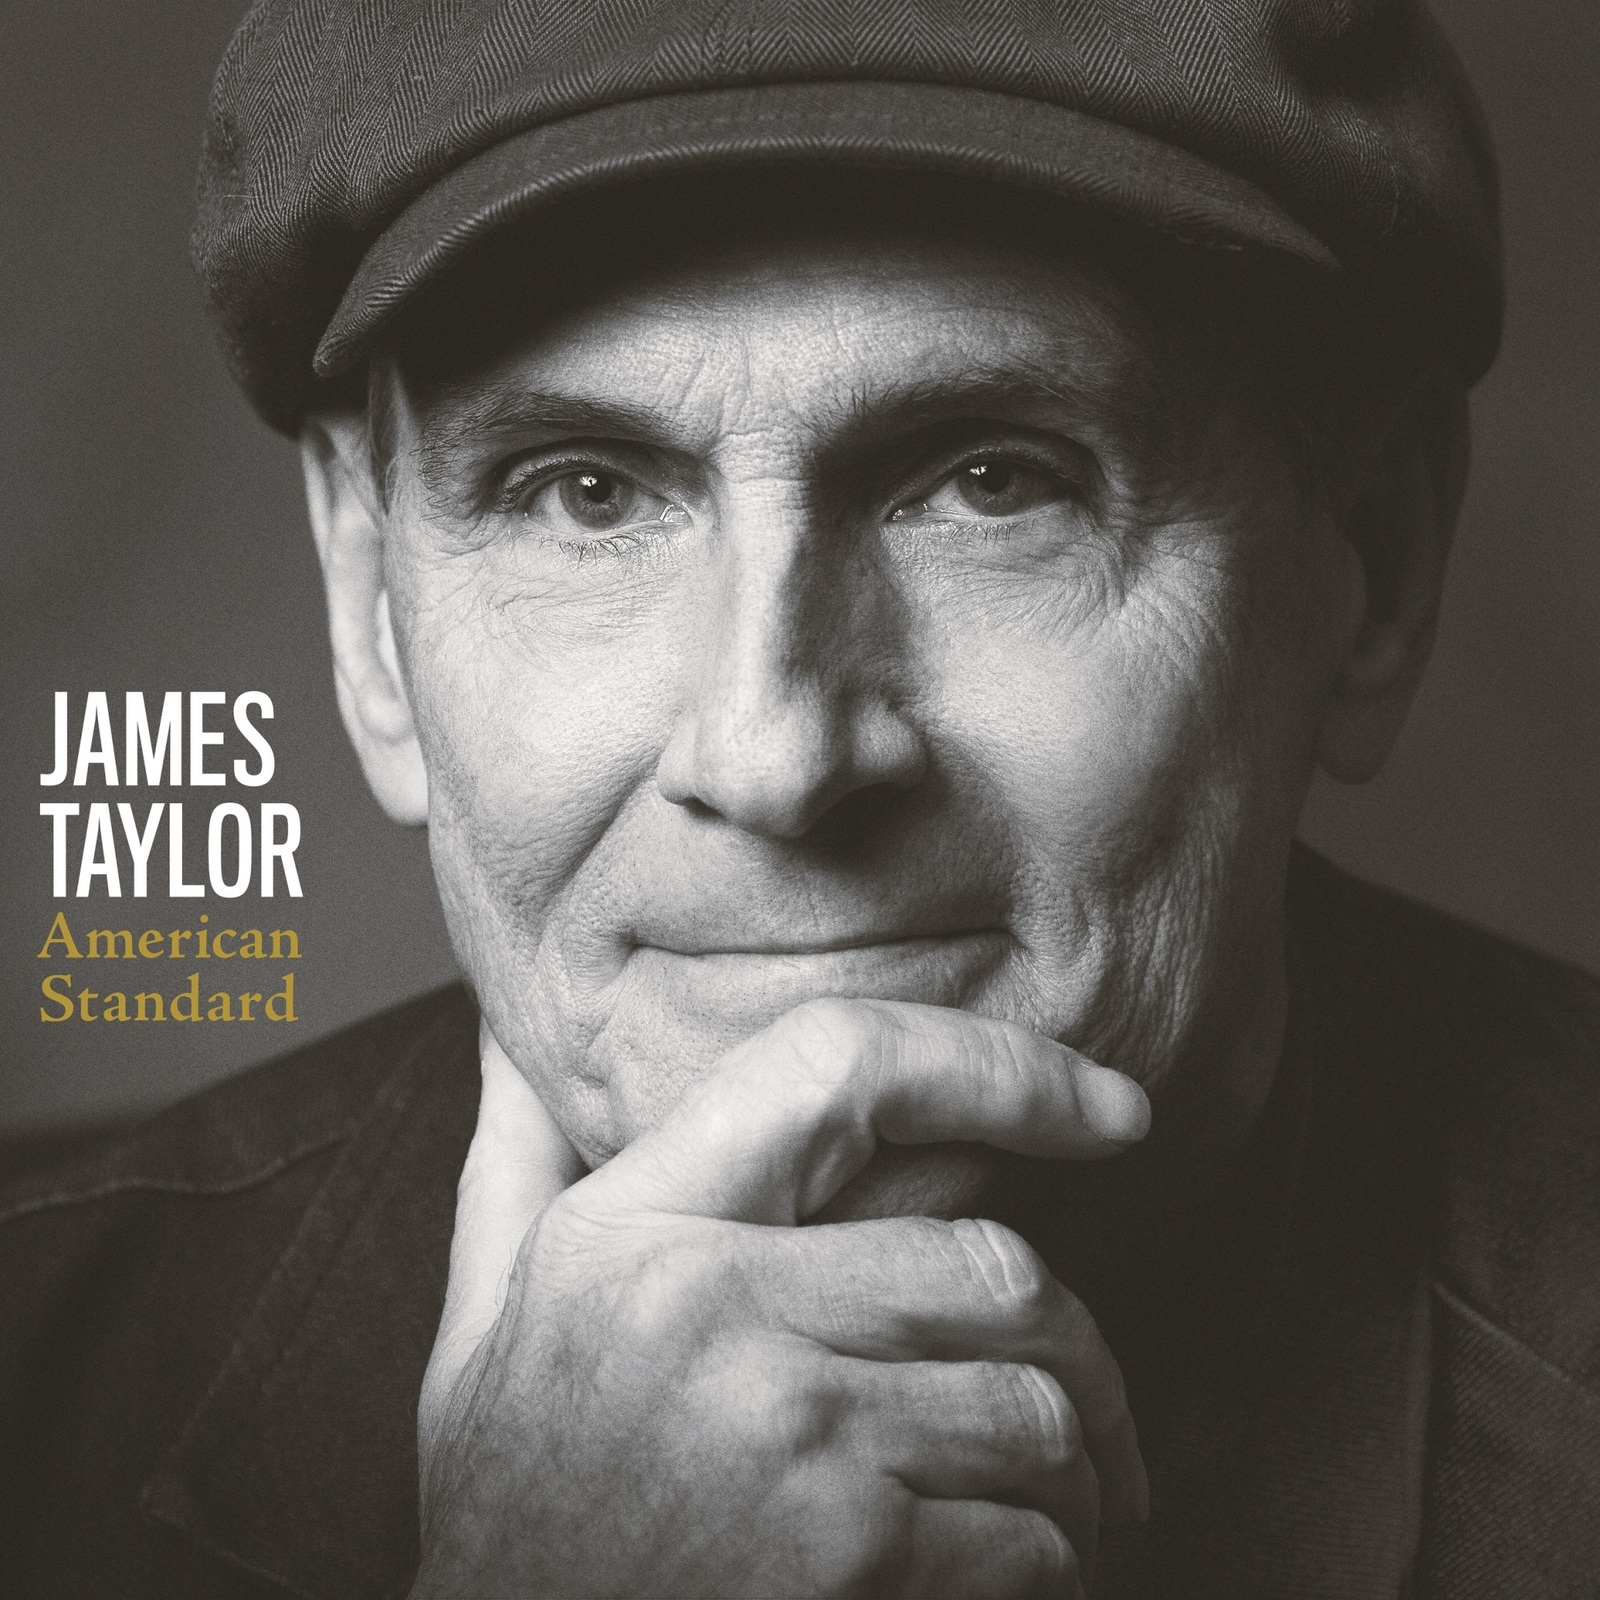 American Standard by James Taylor image